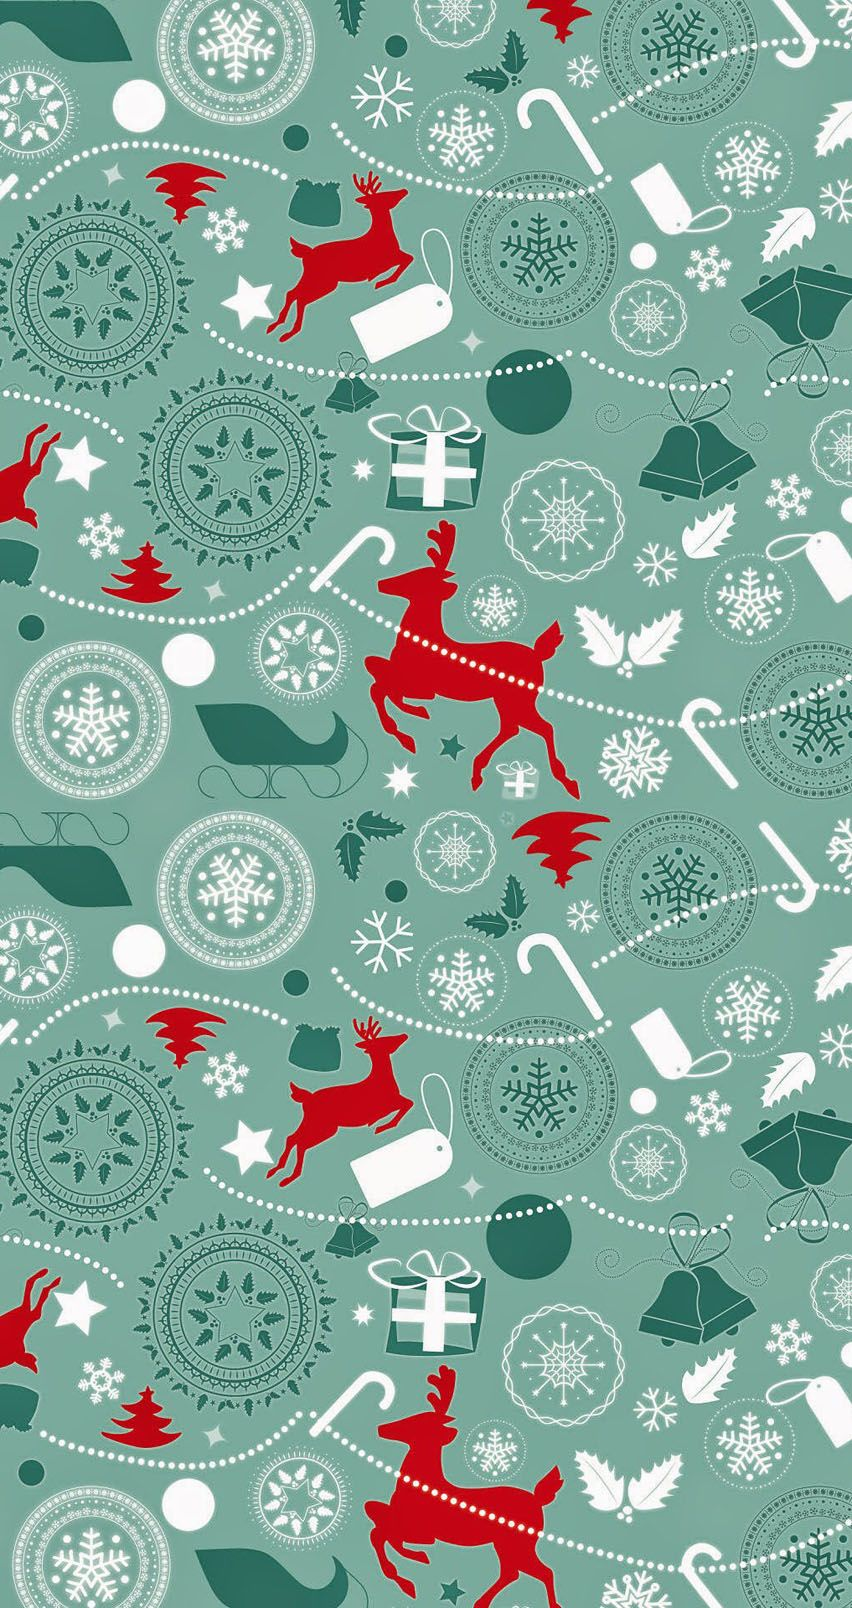 reindeer pattern  tap image for more iphone 6 christmas